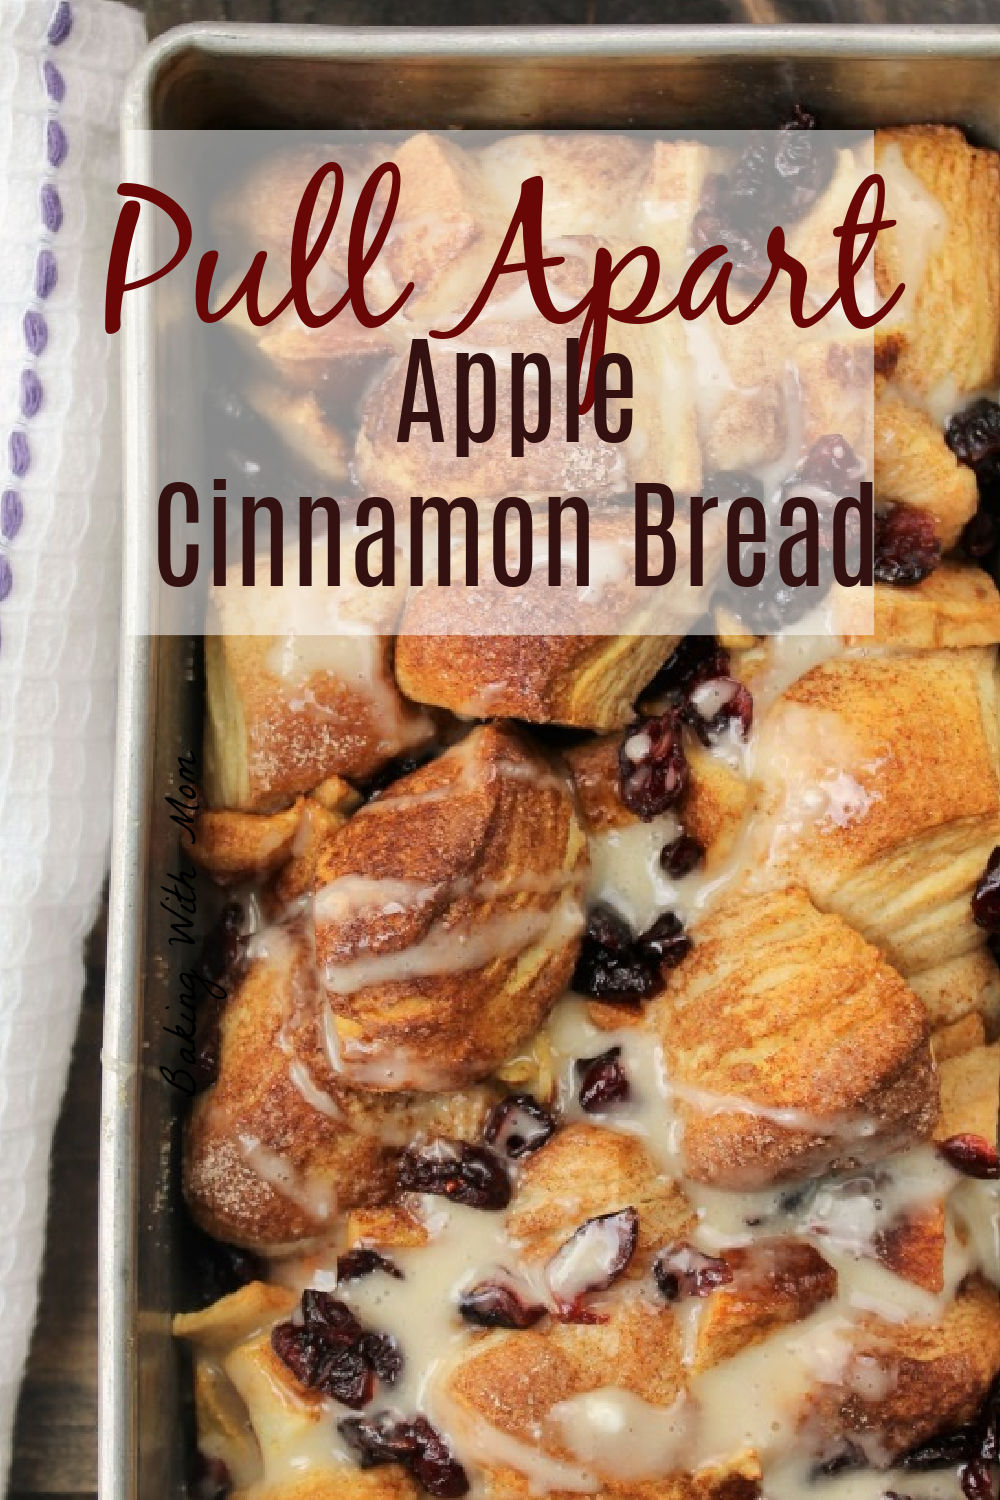 Apple cinnamon bread in a loaf pan with frosting drizzled on top.